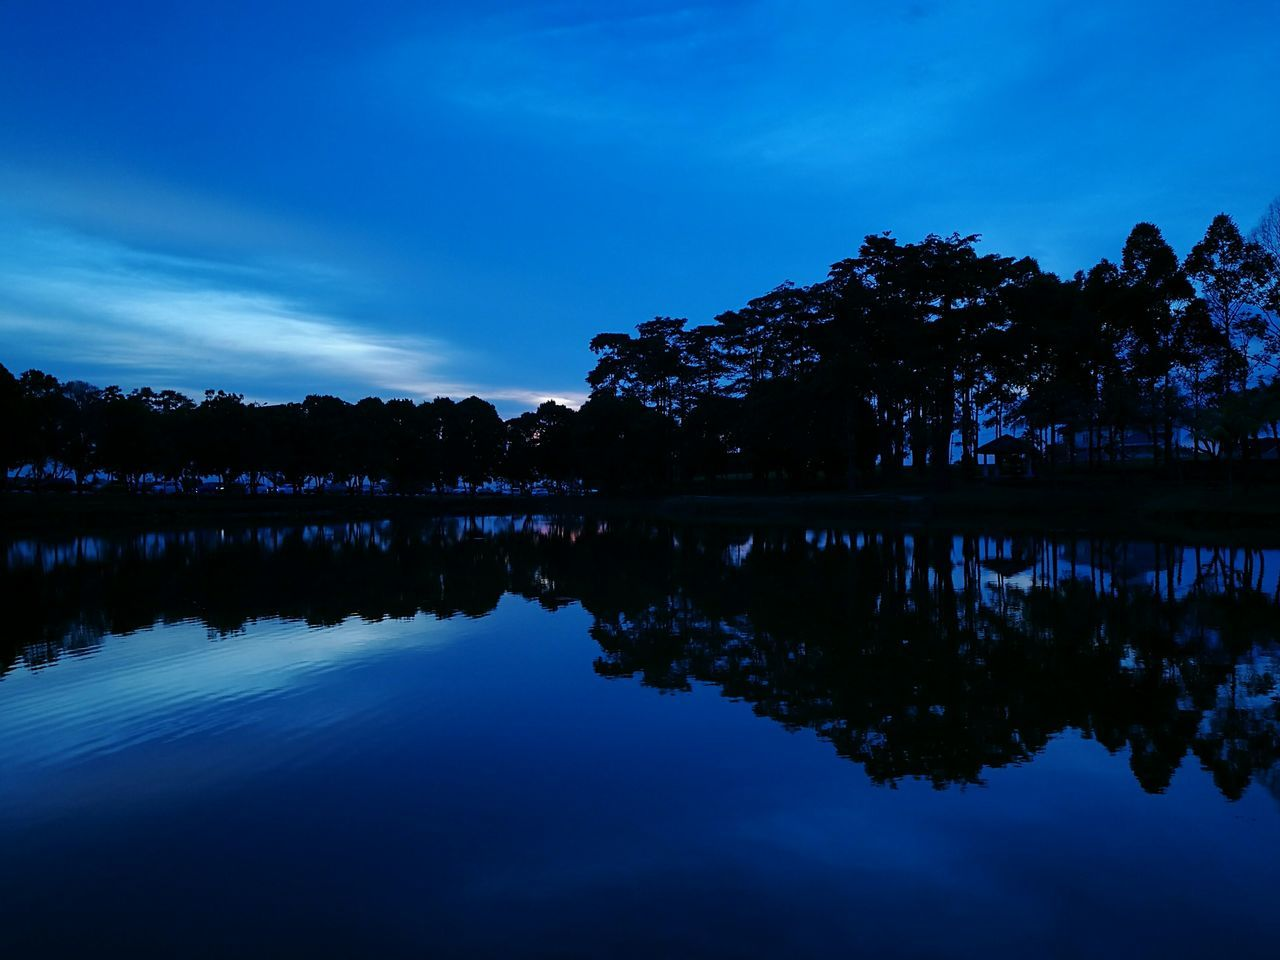 Reflection Water Tree Lake Nature Blue Landscape Scenics Sunset Outdoors Beauty In Nature Sky Water Reflections Forest Peaceful Noedit Backgrounds